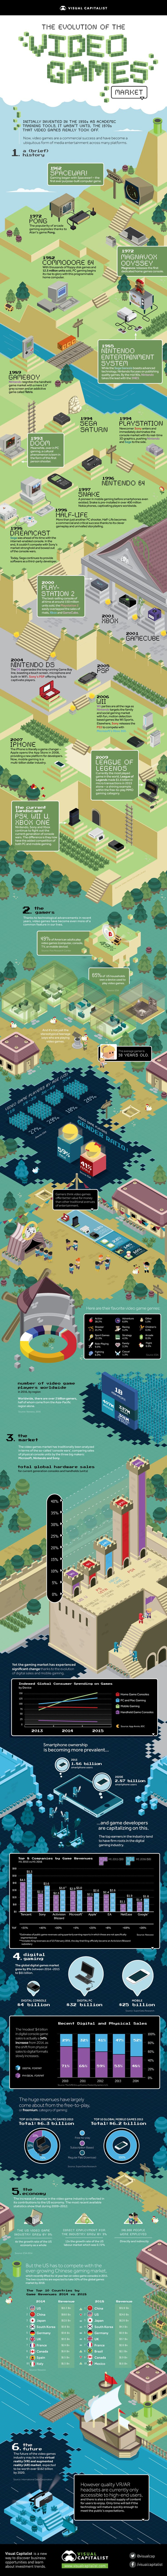 This is How The Video Games Market Has Evolved! - Infographic